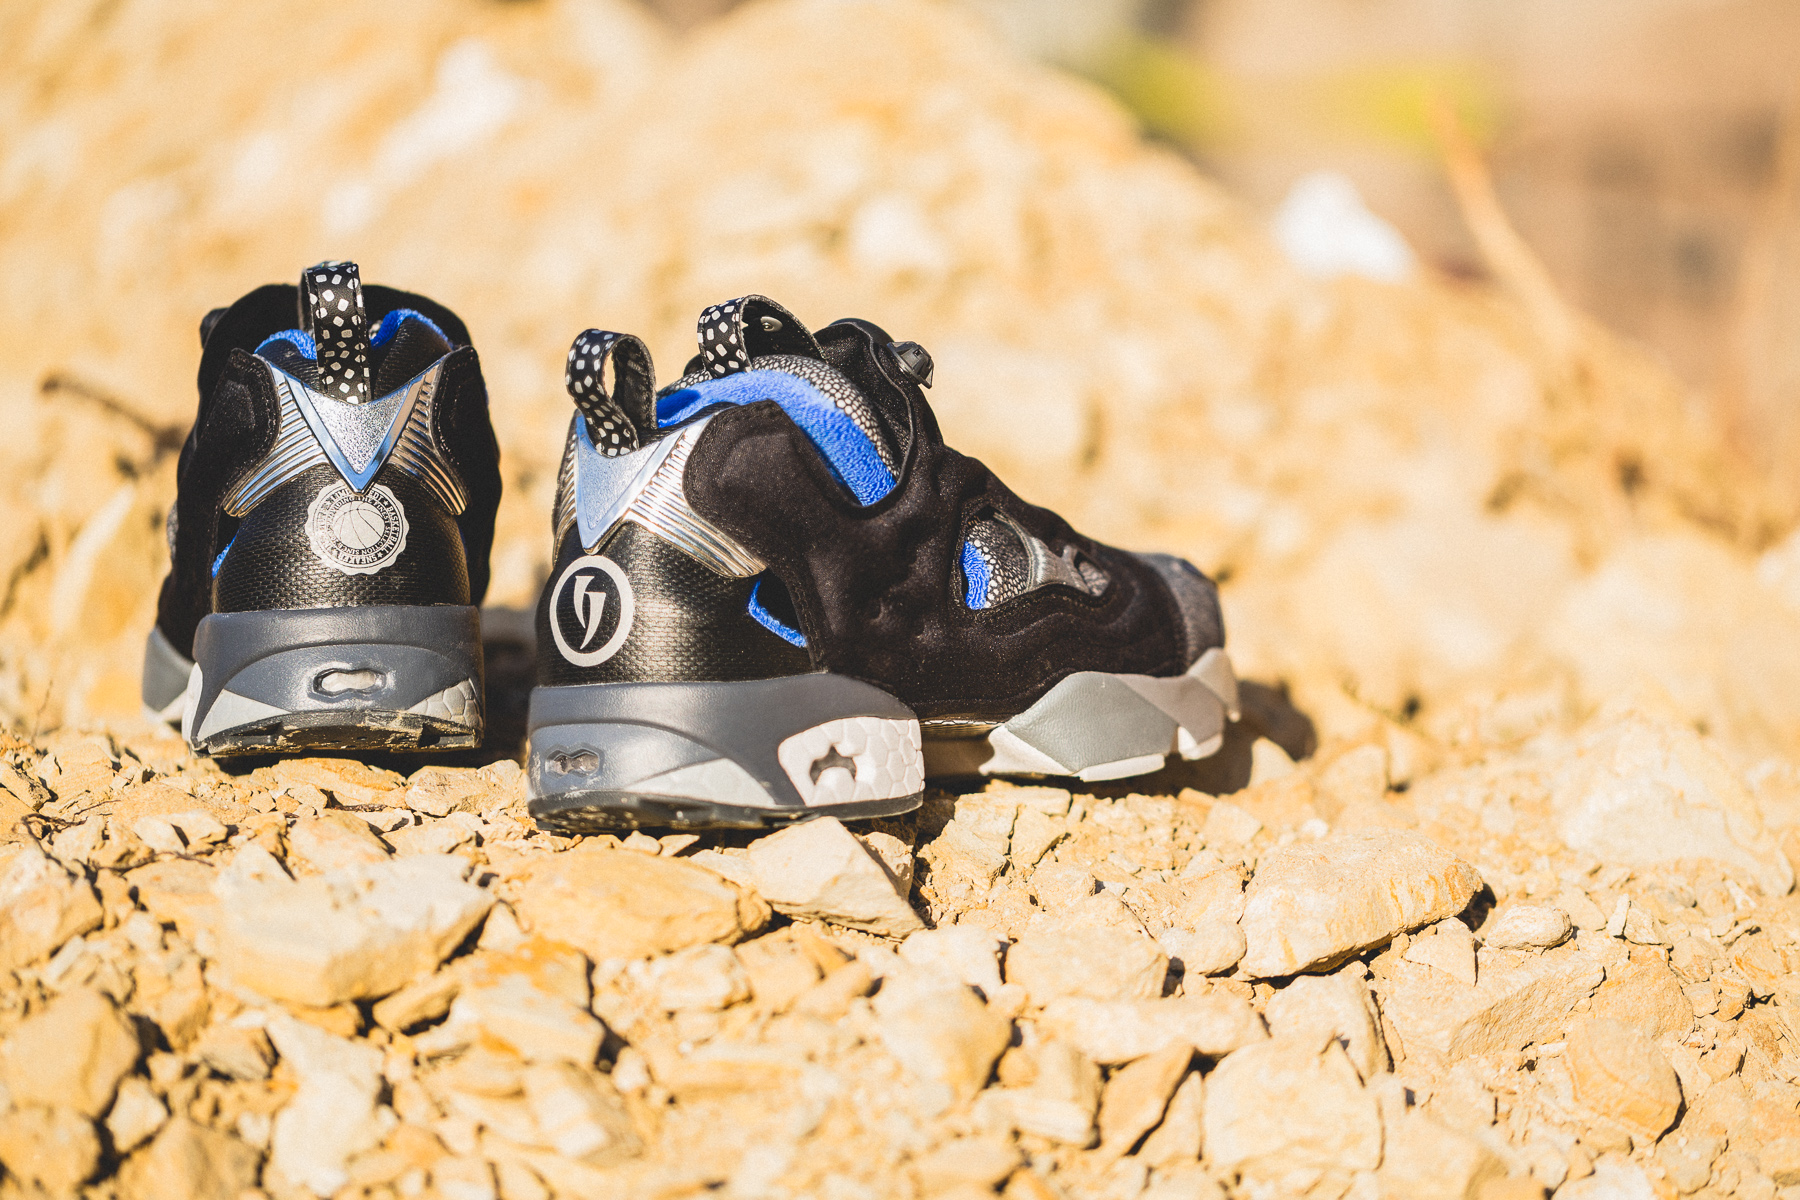 Limited Edt x Hypethetic x Reebok Instapump Fury 20th Anniversary